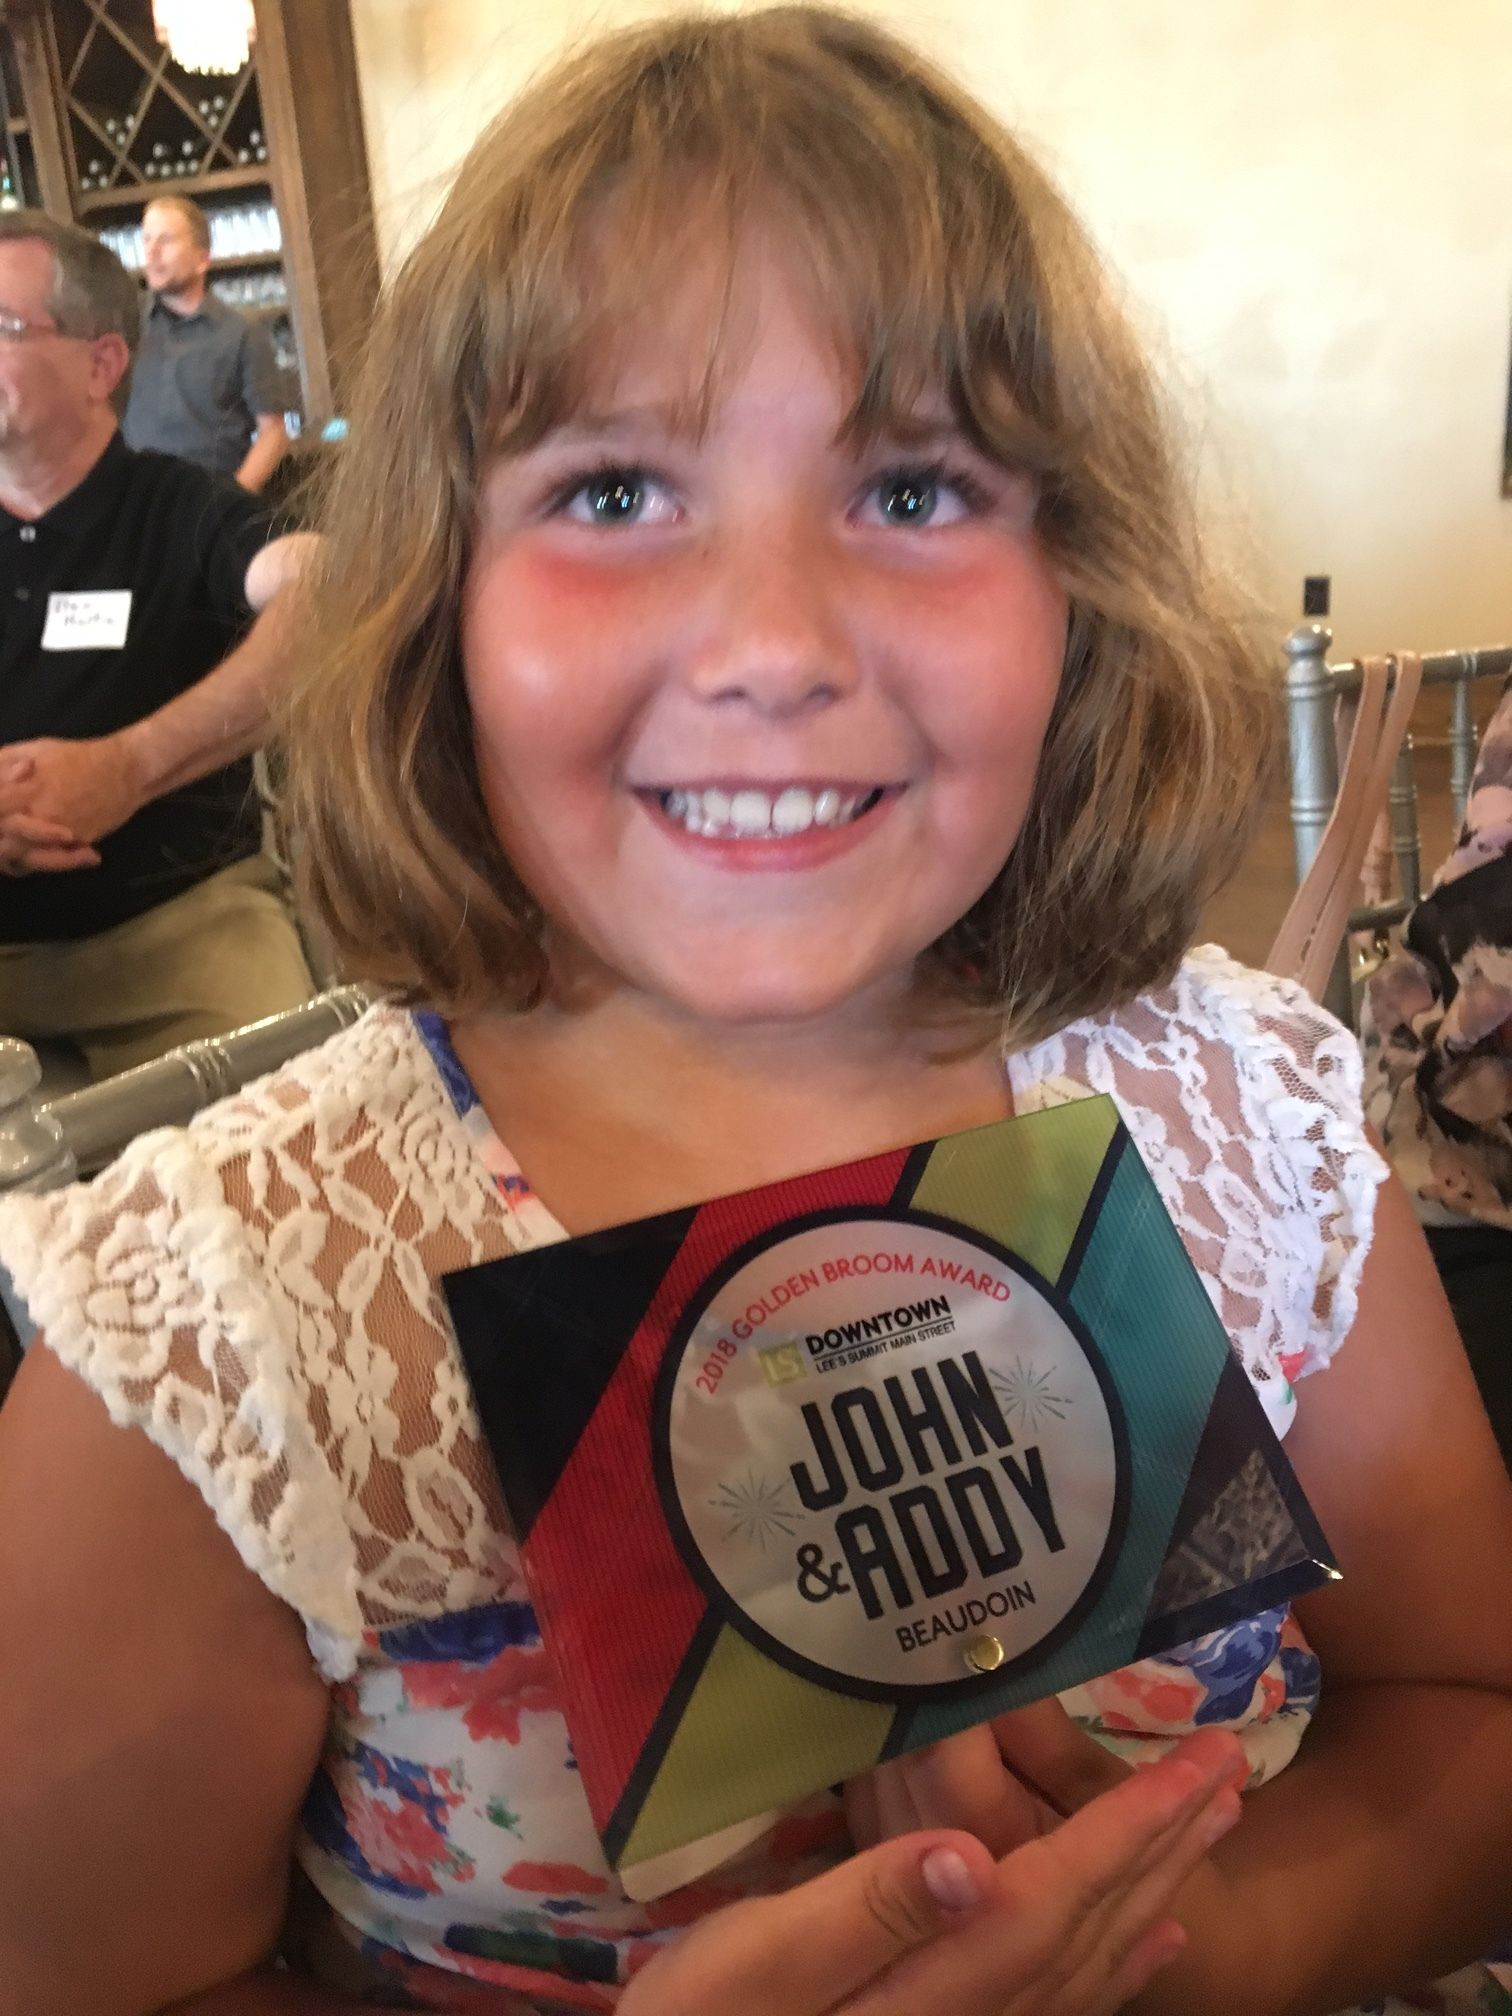 Addy Beaudoin and her father, John, were awarded the 2018 Golden Broom Award at last month's Downtown Lee's Summit Main Street annual banquet. The award recognized their volunteer service to the community, specifically a clean-up event organized prior to the Big Bash celebration which drew visitors from across the nation.